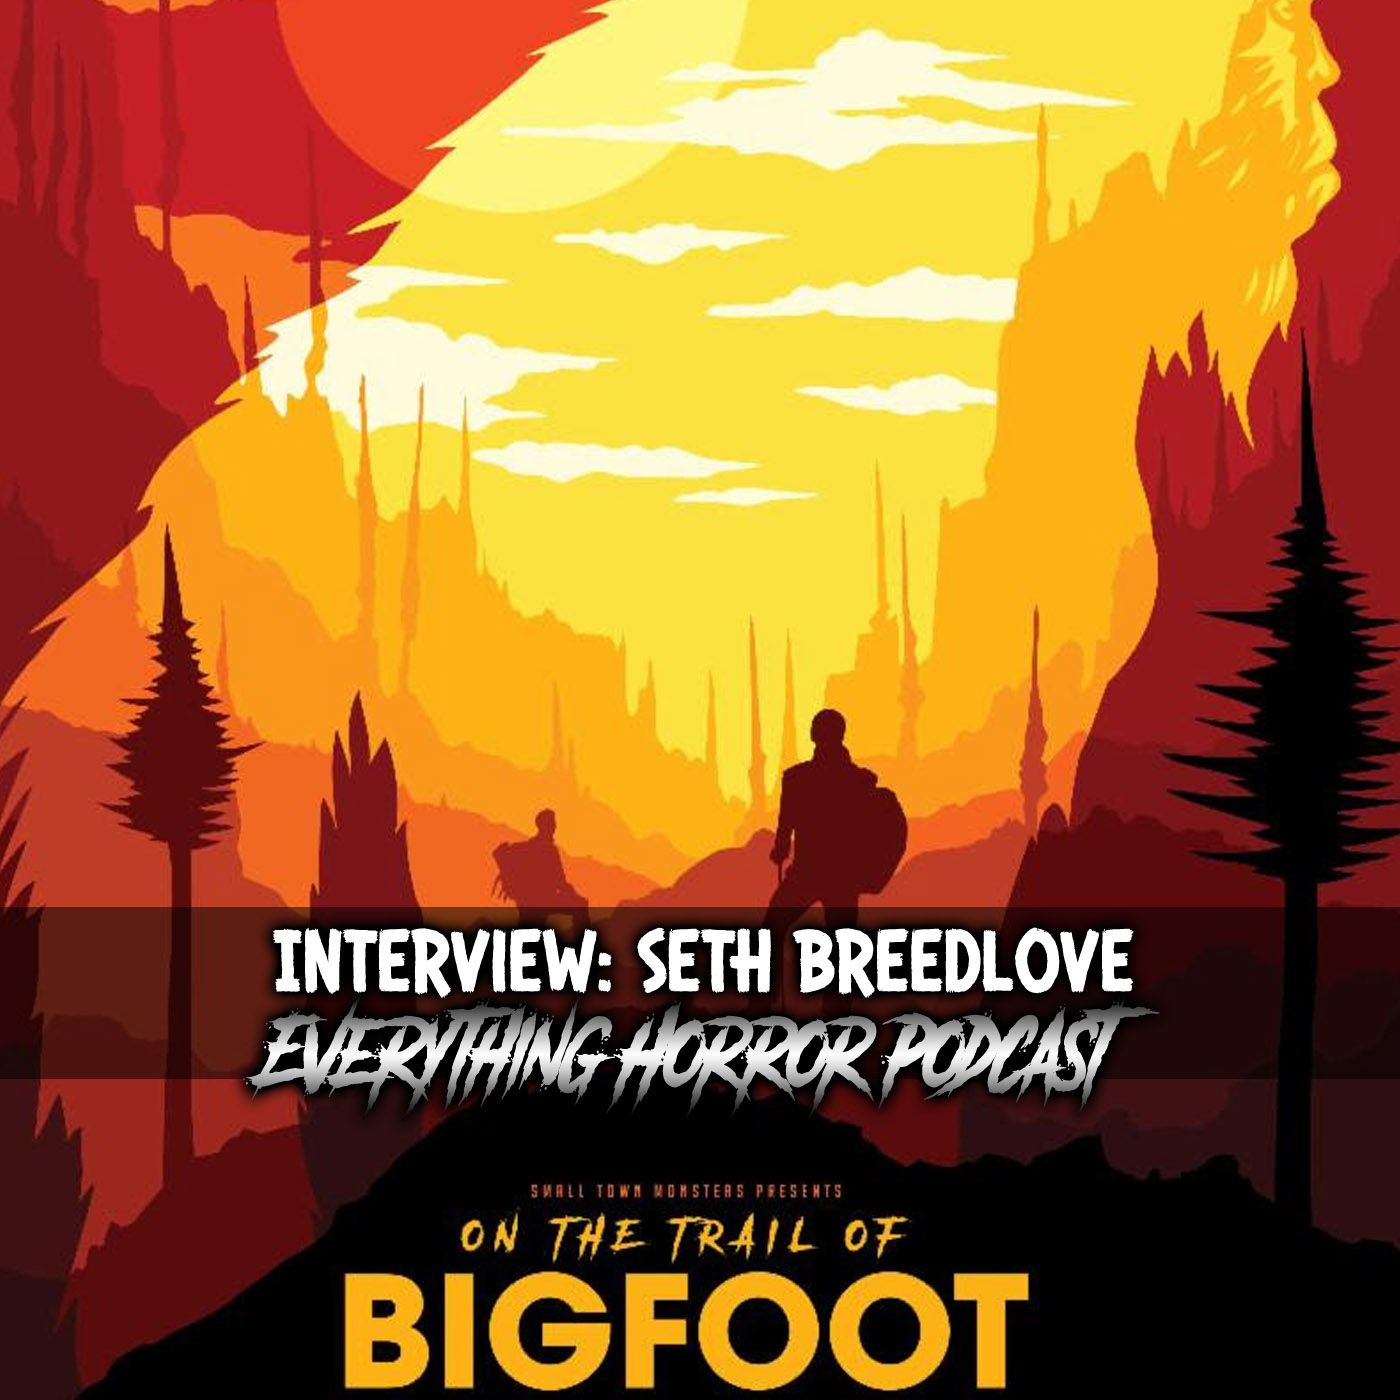 Interview: Seth Breedlove | On the Trail of Bigfoot